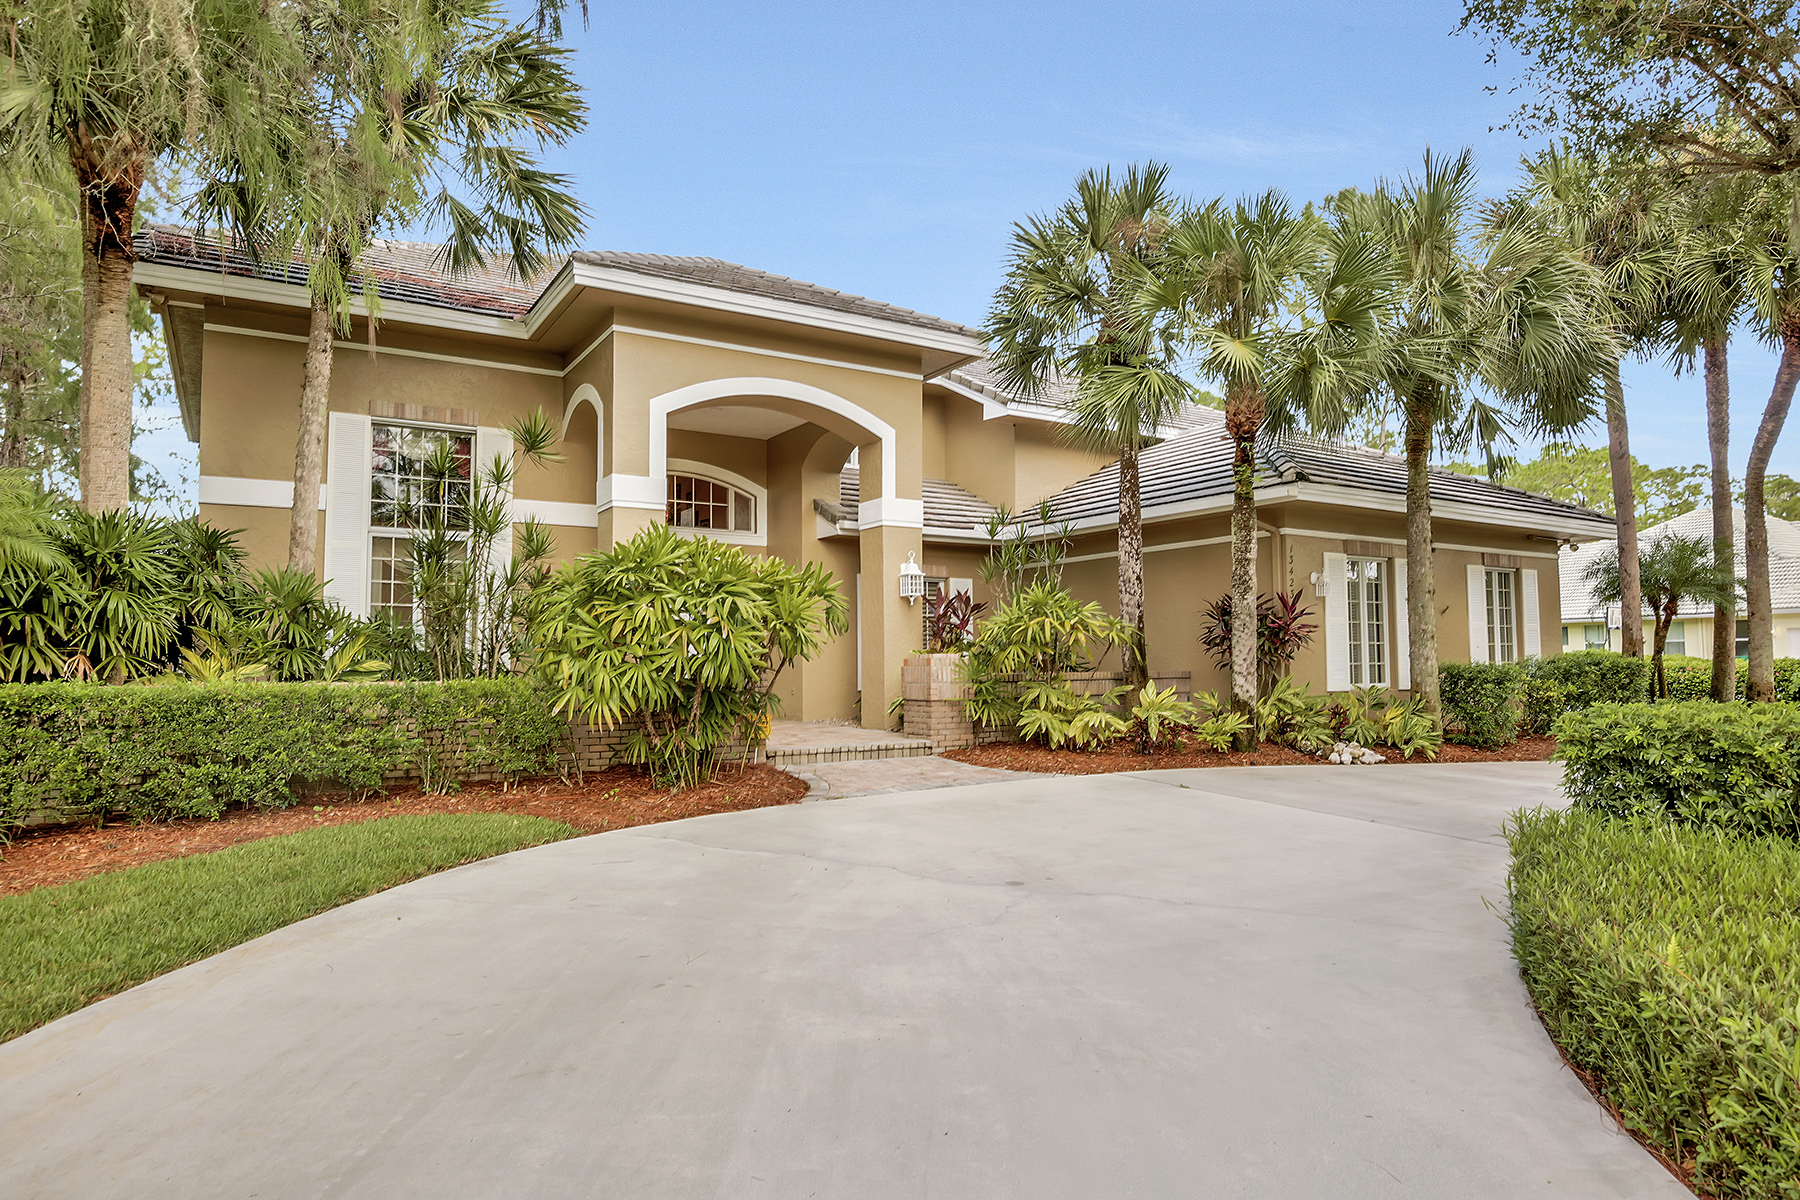 Single Family Home for Sale at QUAIL CREEK 13423 Pond Apple Dr E Quail Creek, Naples, Florida, 34119 United States